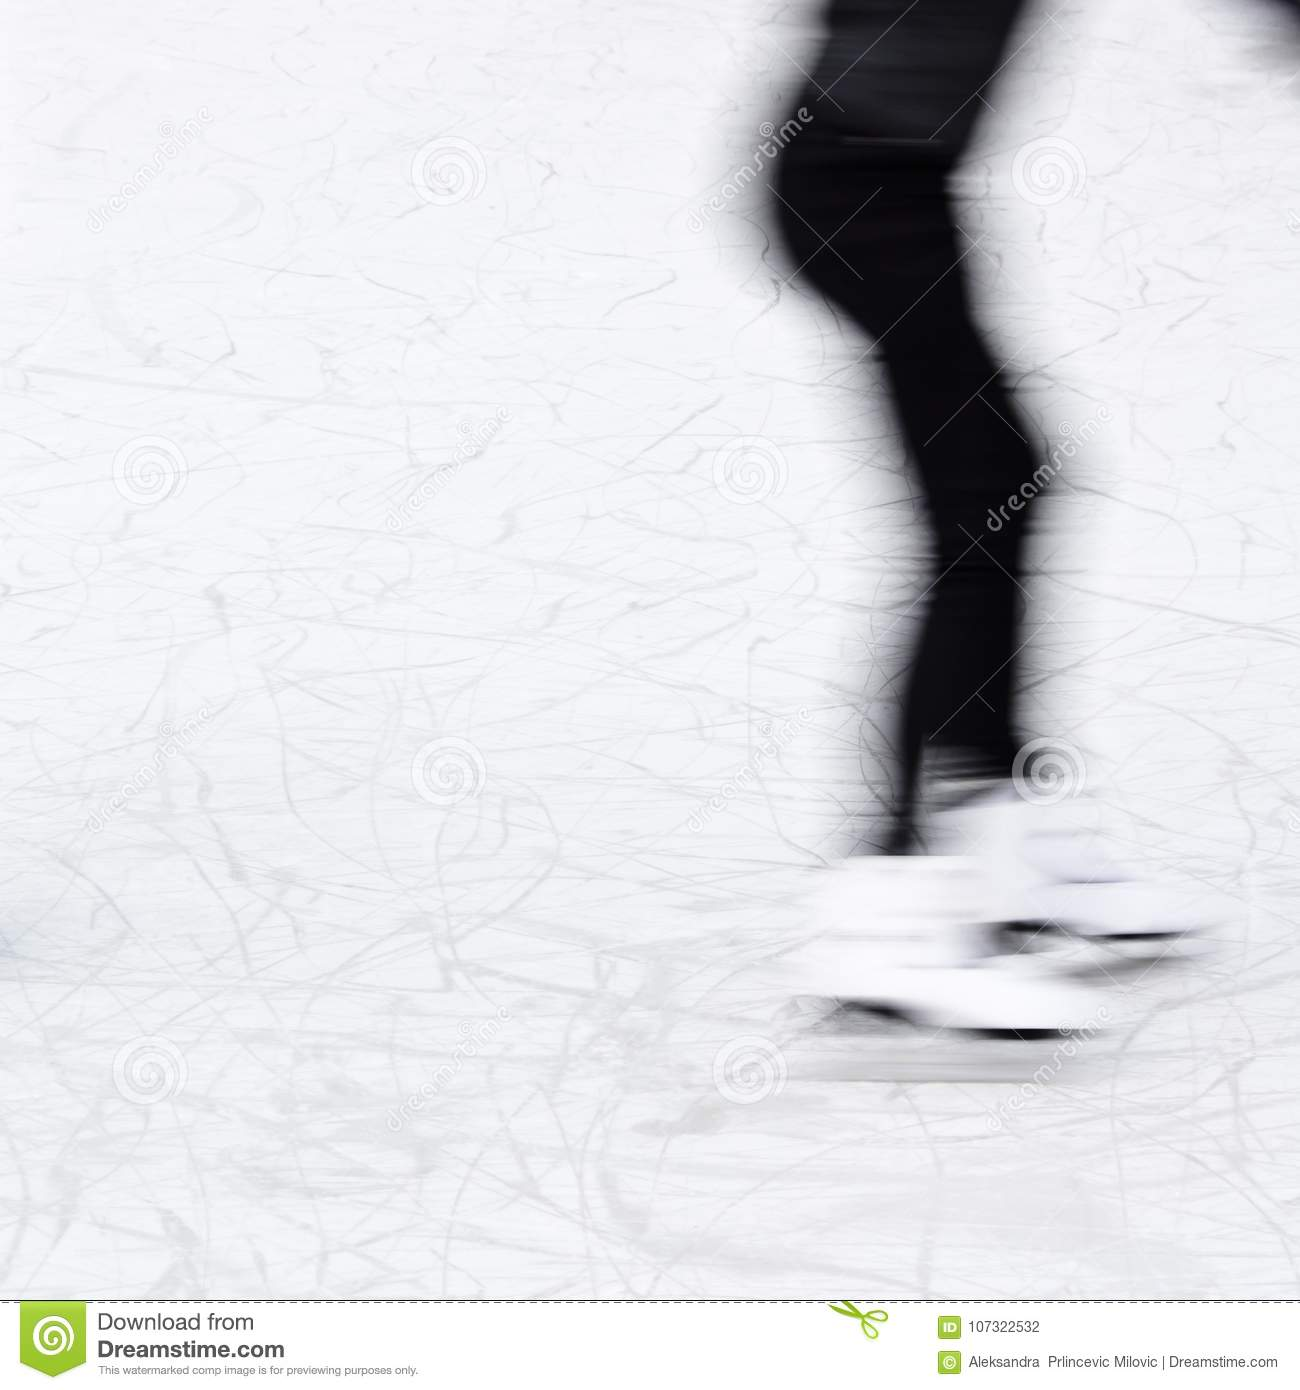 Arty blurry ice skating girl